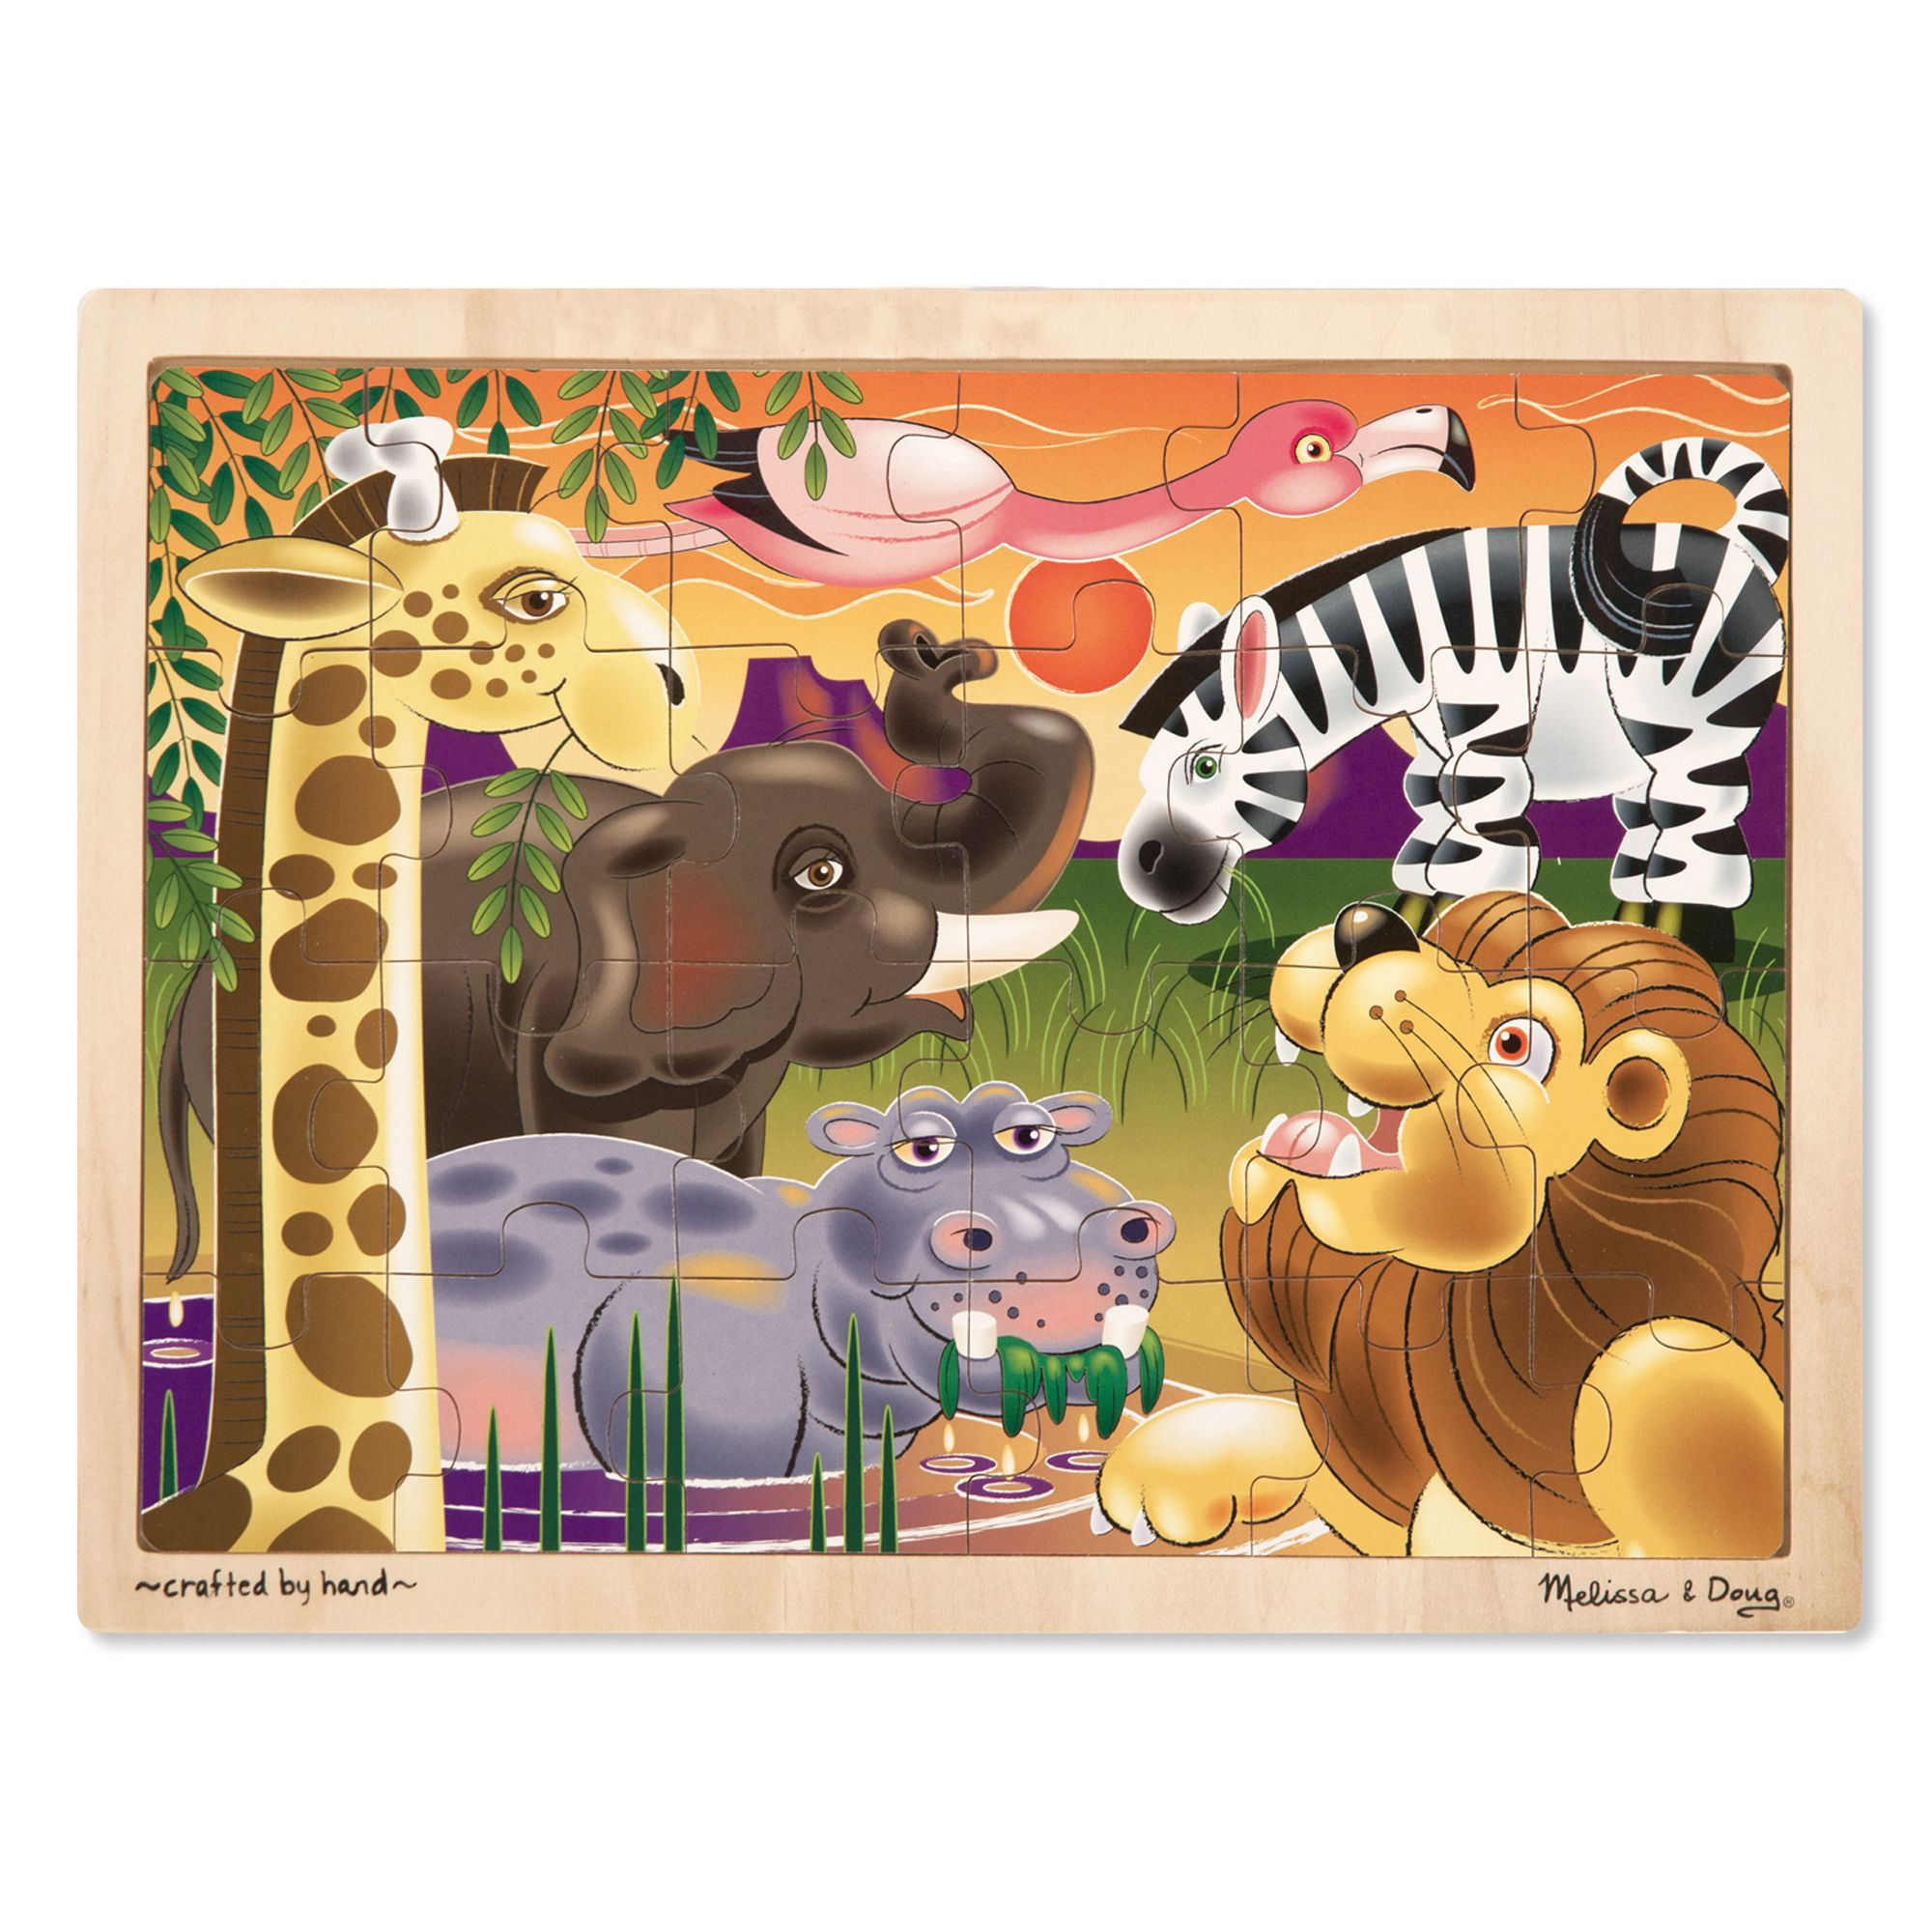 The sun may be setting on the Savannah, but this 24-piece wooden jigsaw provides puzzle fun at any time of day. With a hippo in the watering hole and a flamingo in flight, assembling this jigsaw reveals part of African life with every piece. This educational kids' puzzle comes packaged in a sturdy wooden tray for play and easy storage.